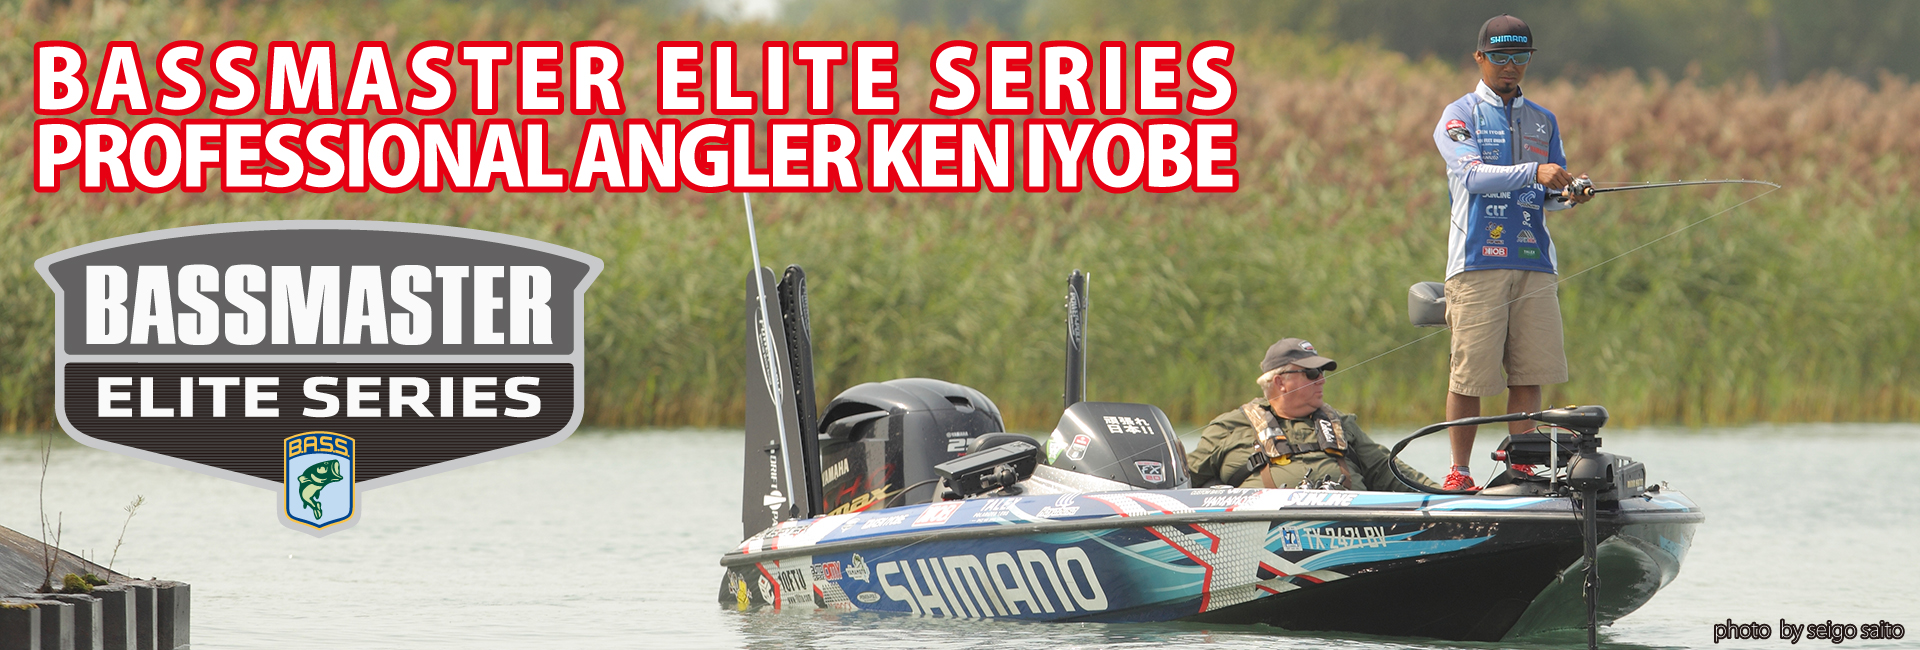 PROFESSIONAL ANGLER KEN IYOBE OFFICIAL SITE